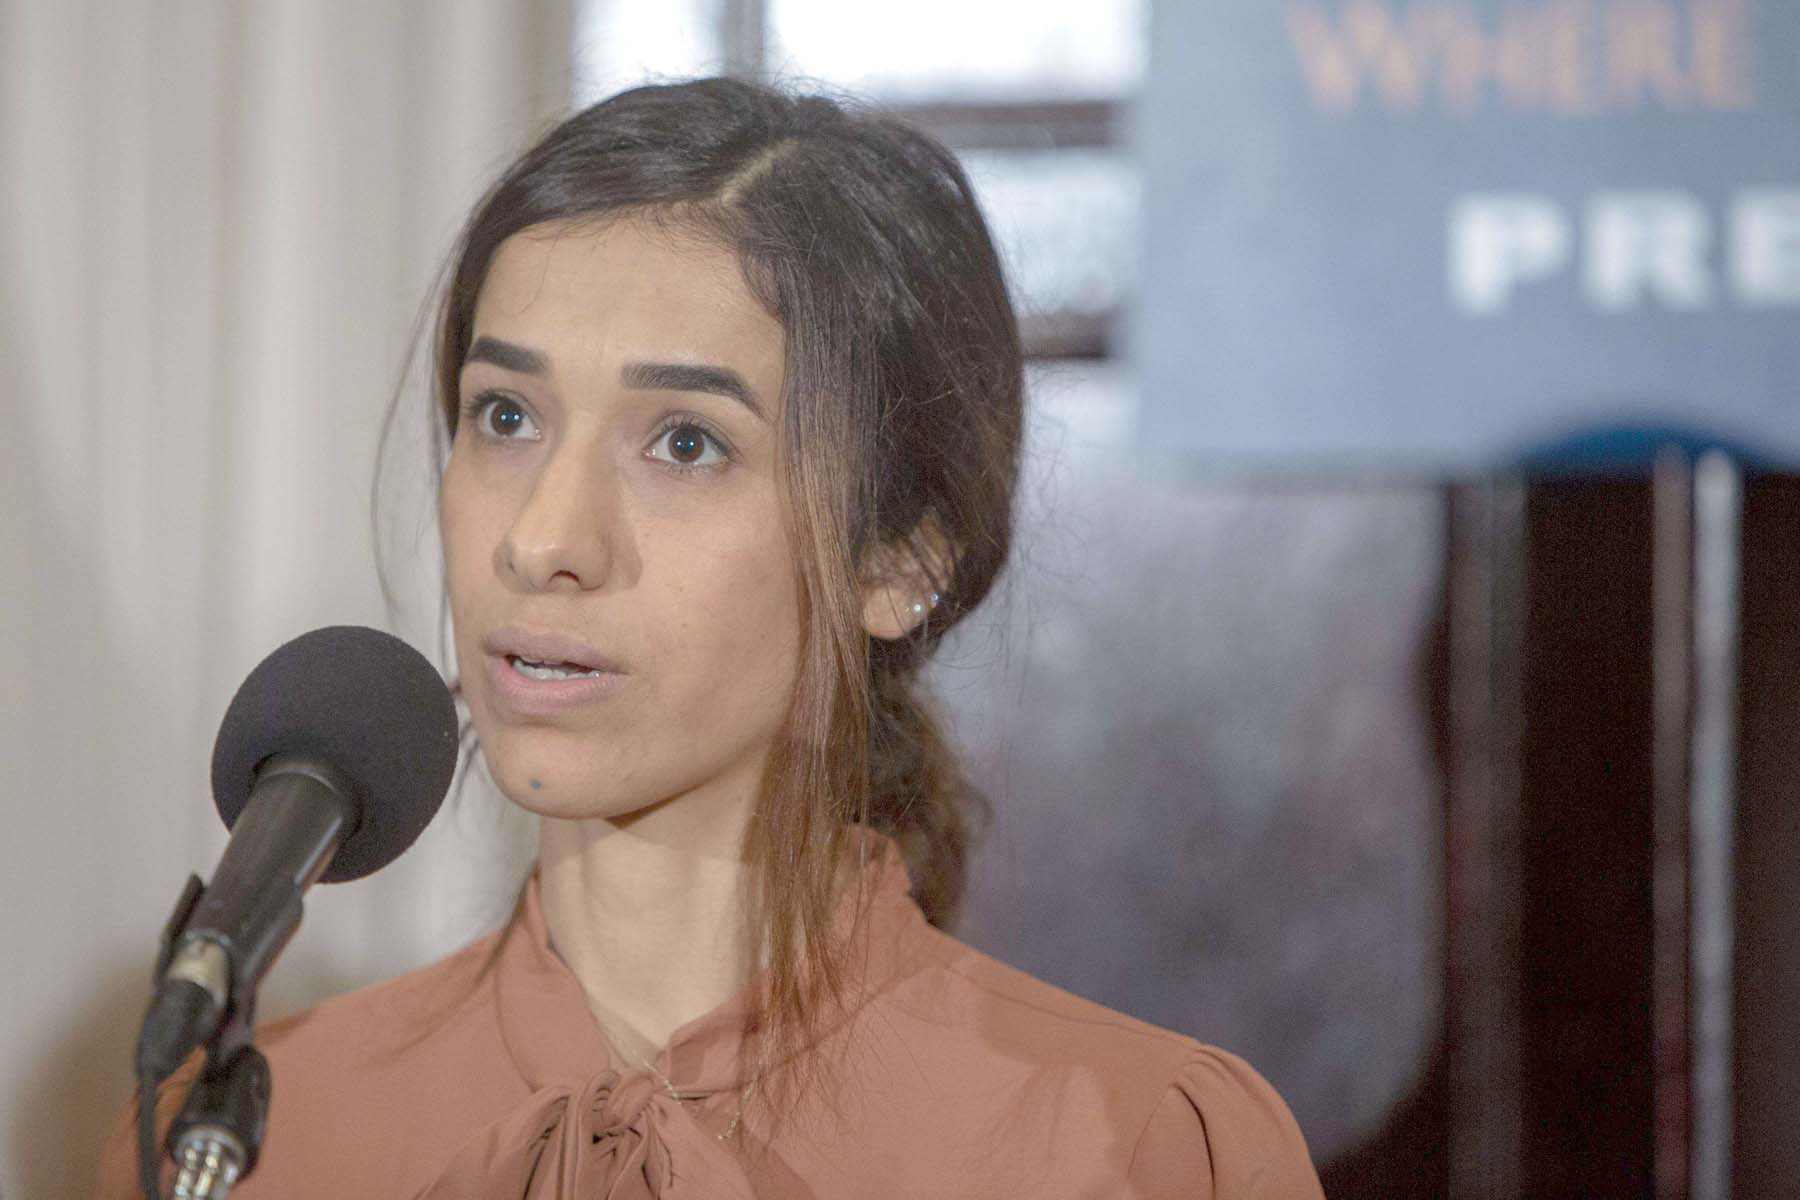 Nadia Murad, a 25-year-old Yazidi woman and co-recipient of the 2018 Nobel Peace Prize, speaks in Washington, on October 8.             (AFP)